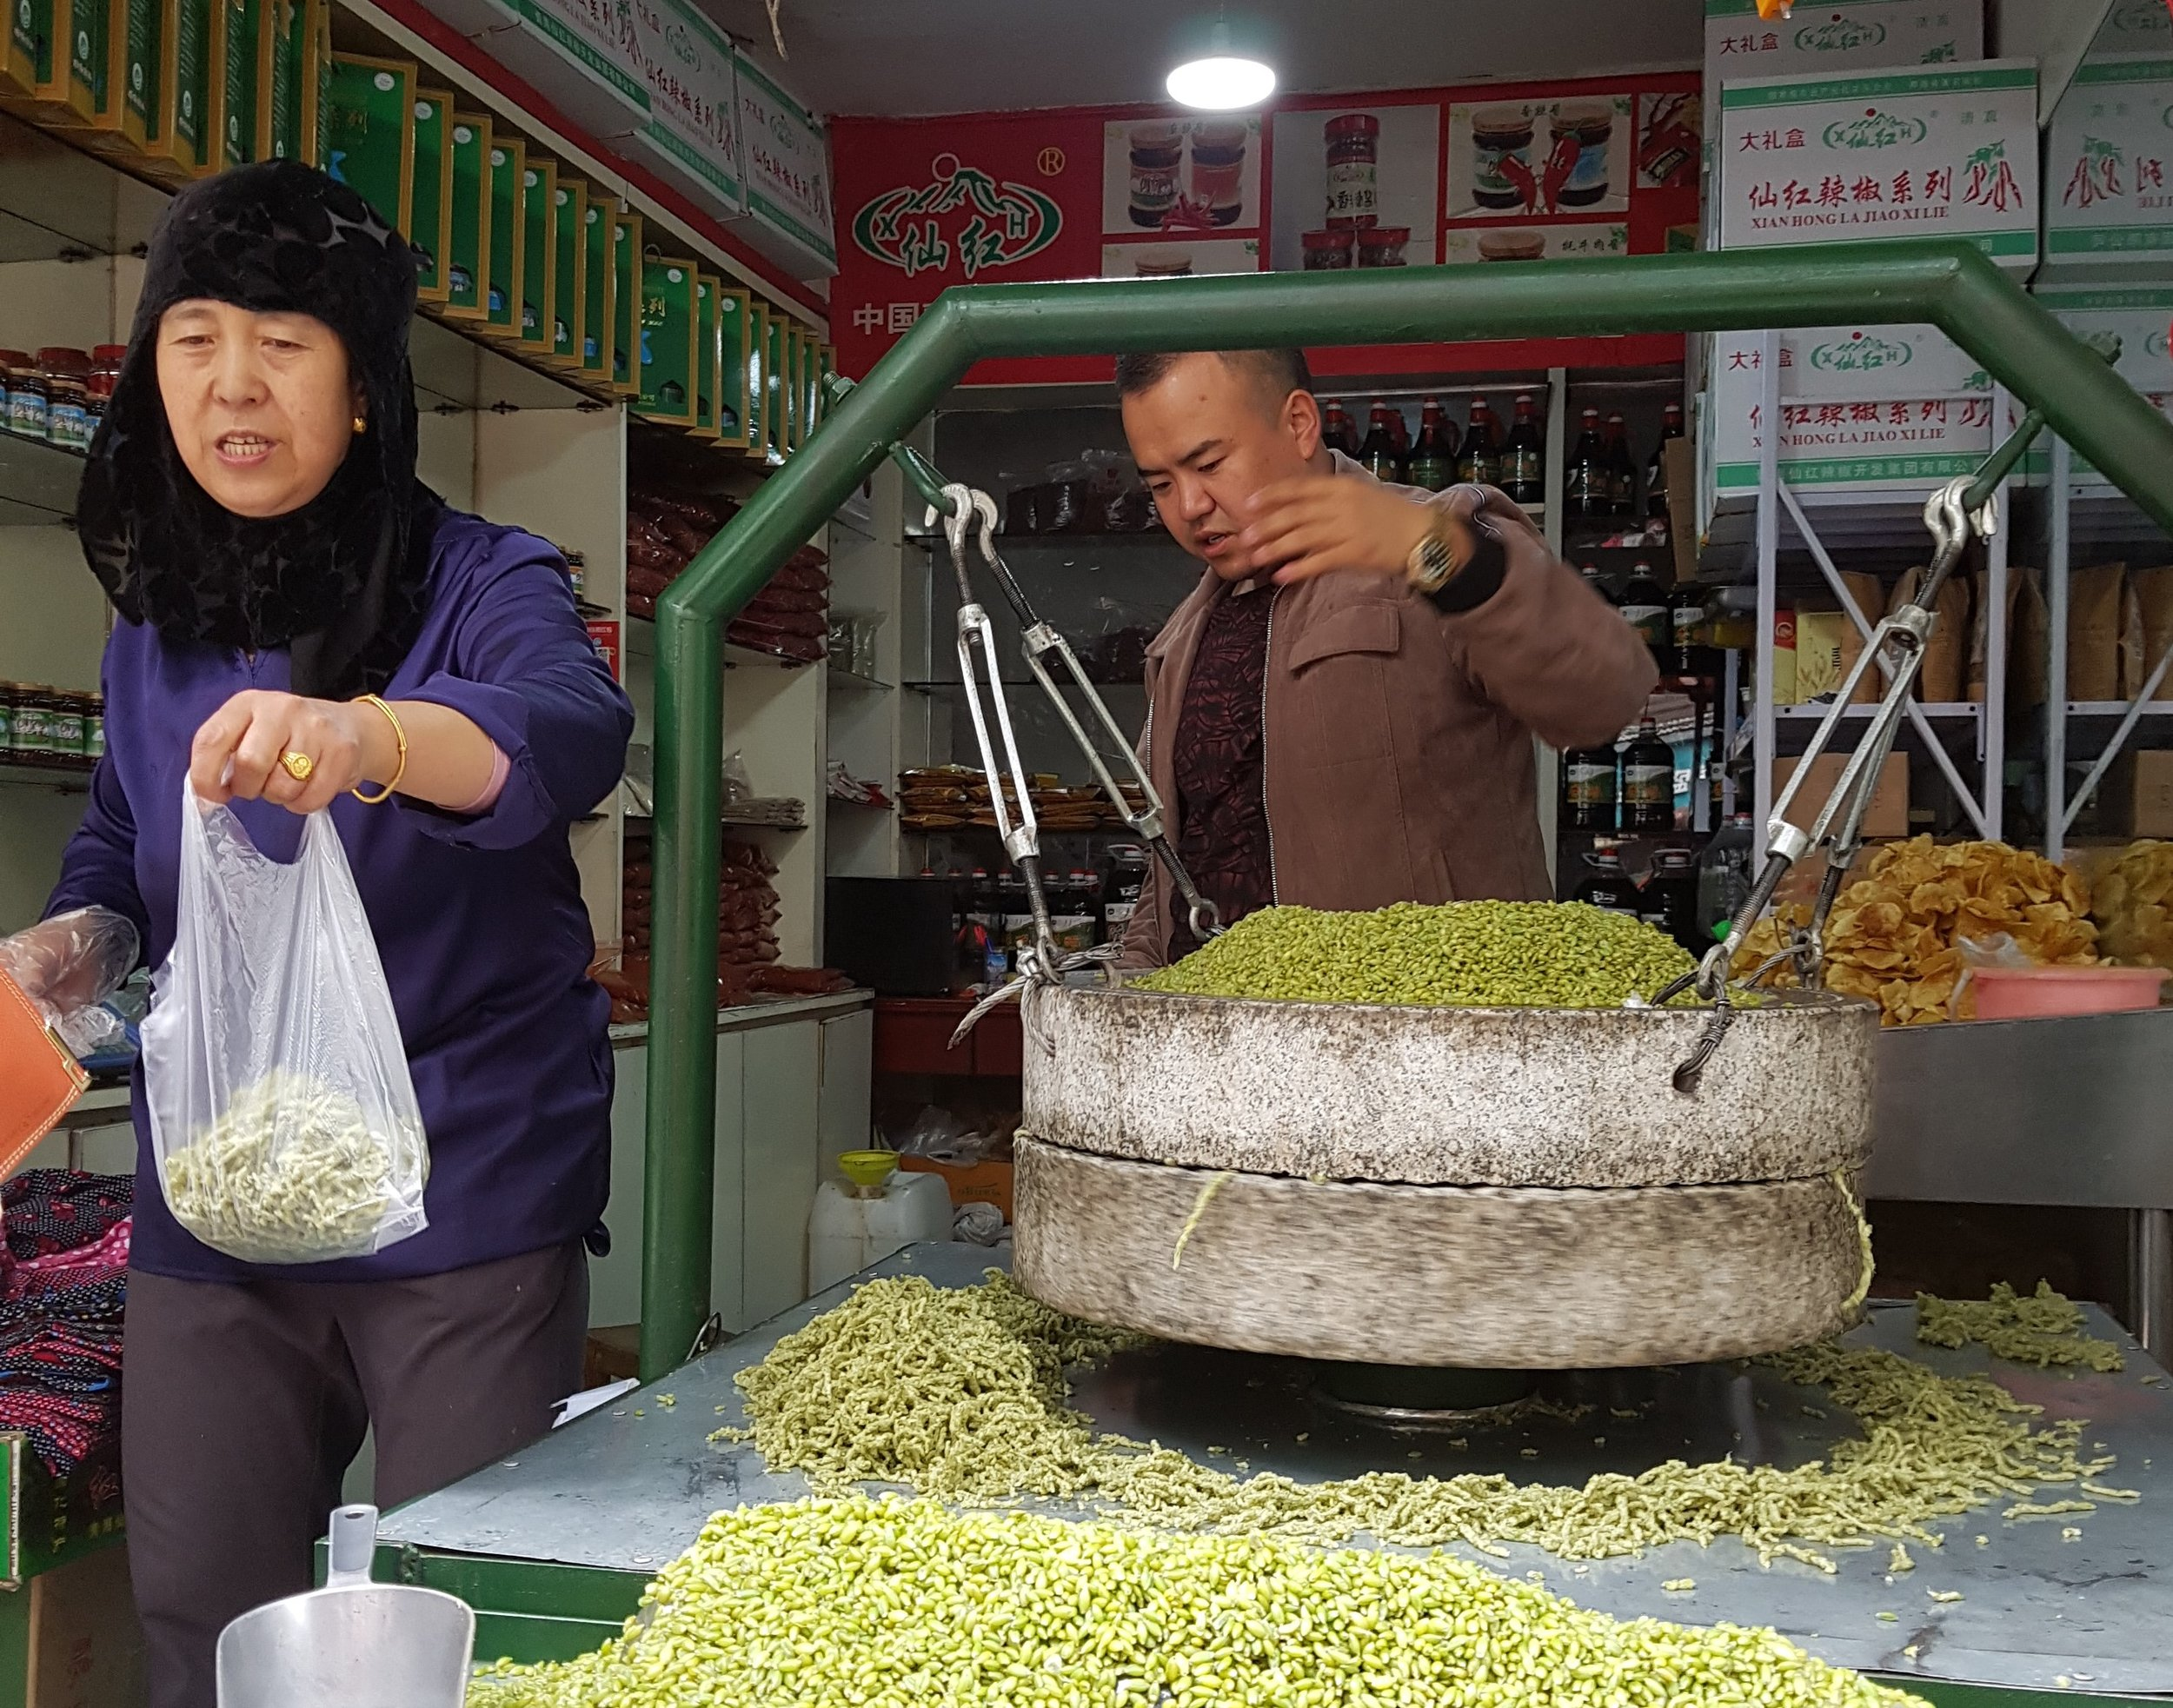 Selling grains in Xining - note typical black scarf of Hui woman